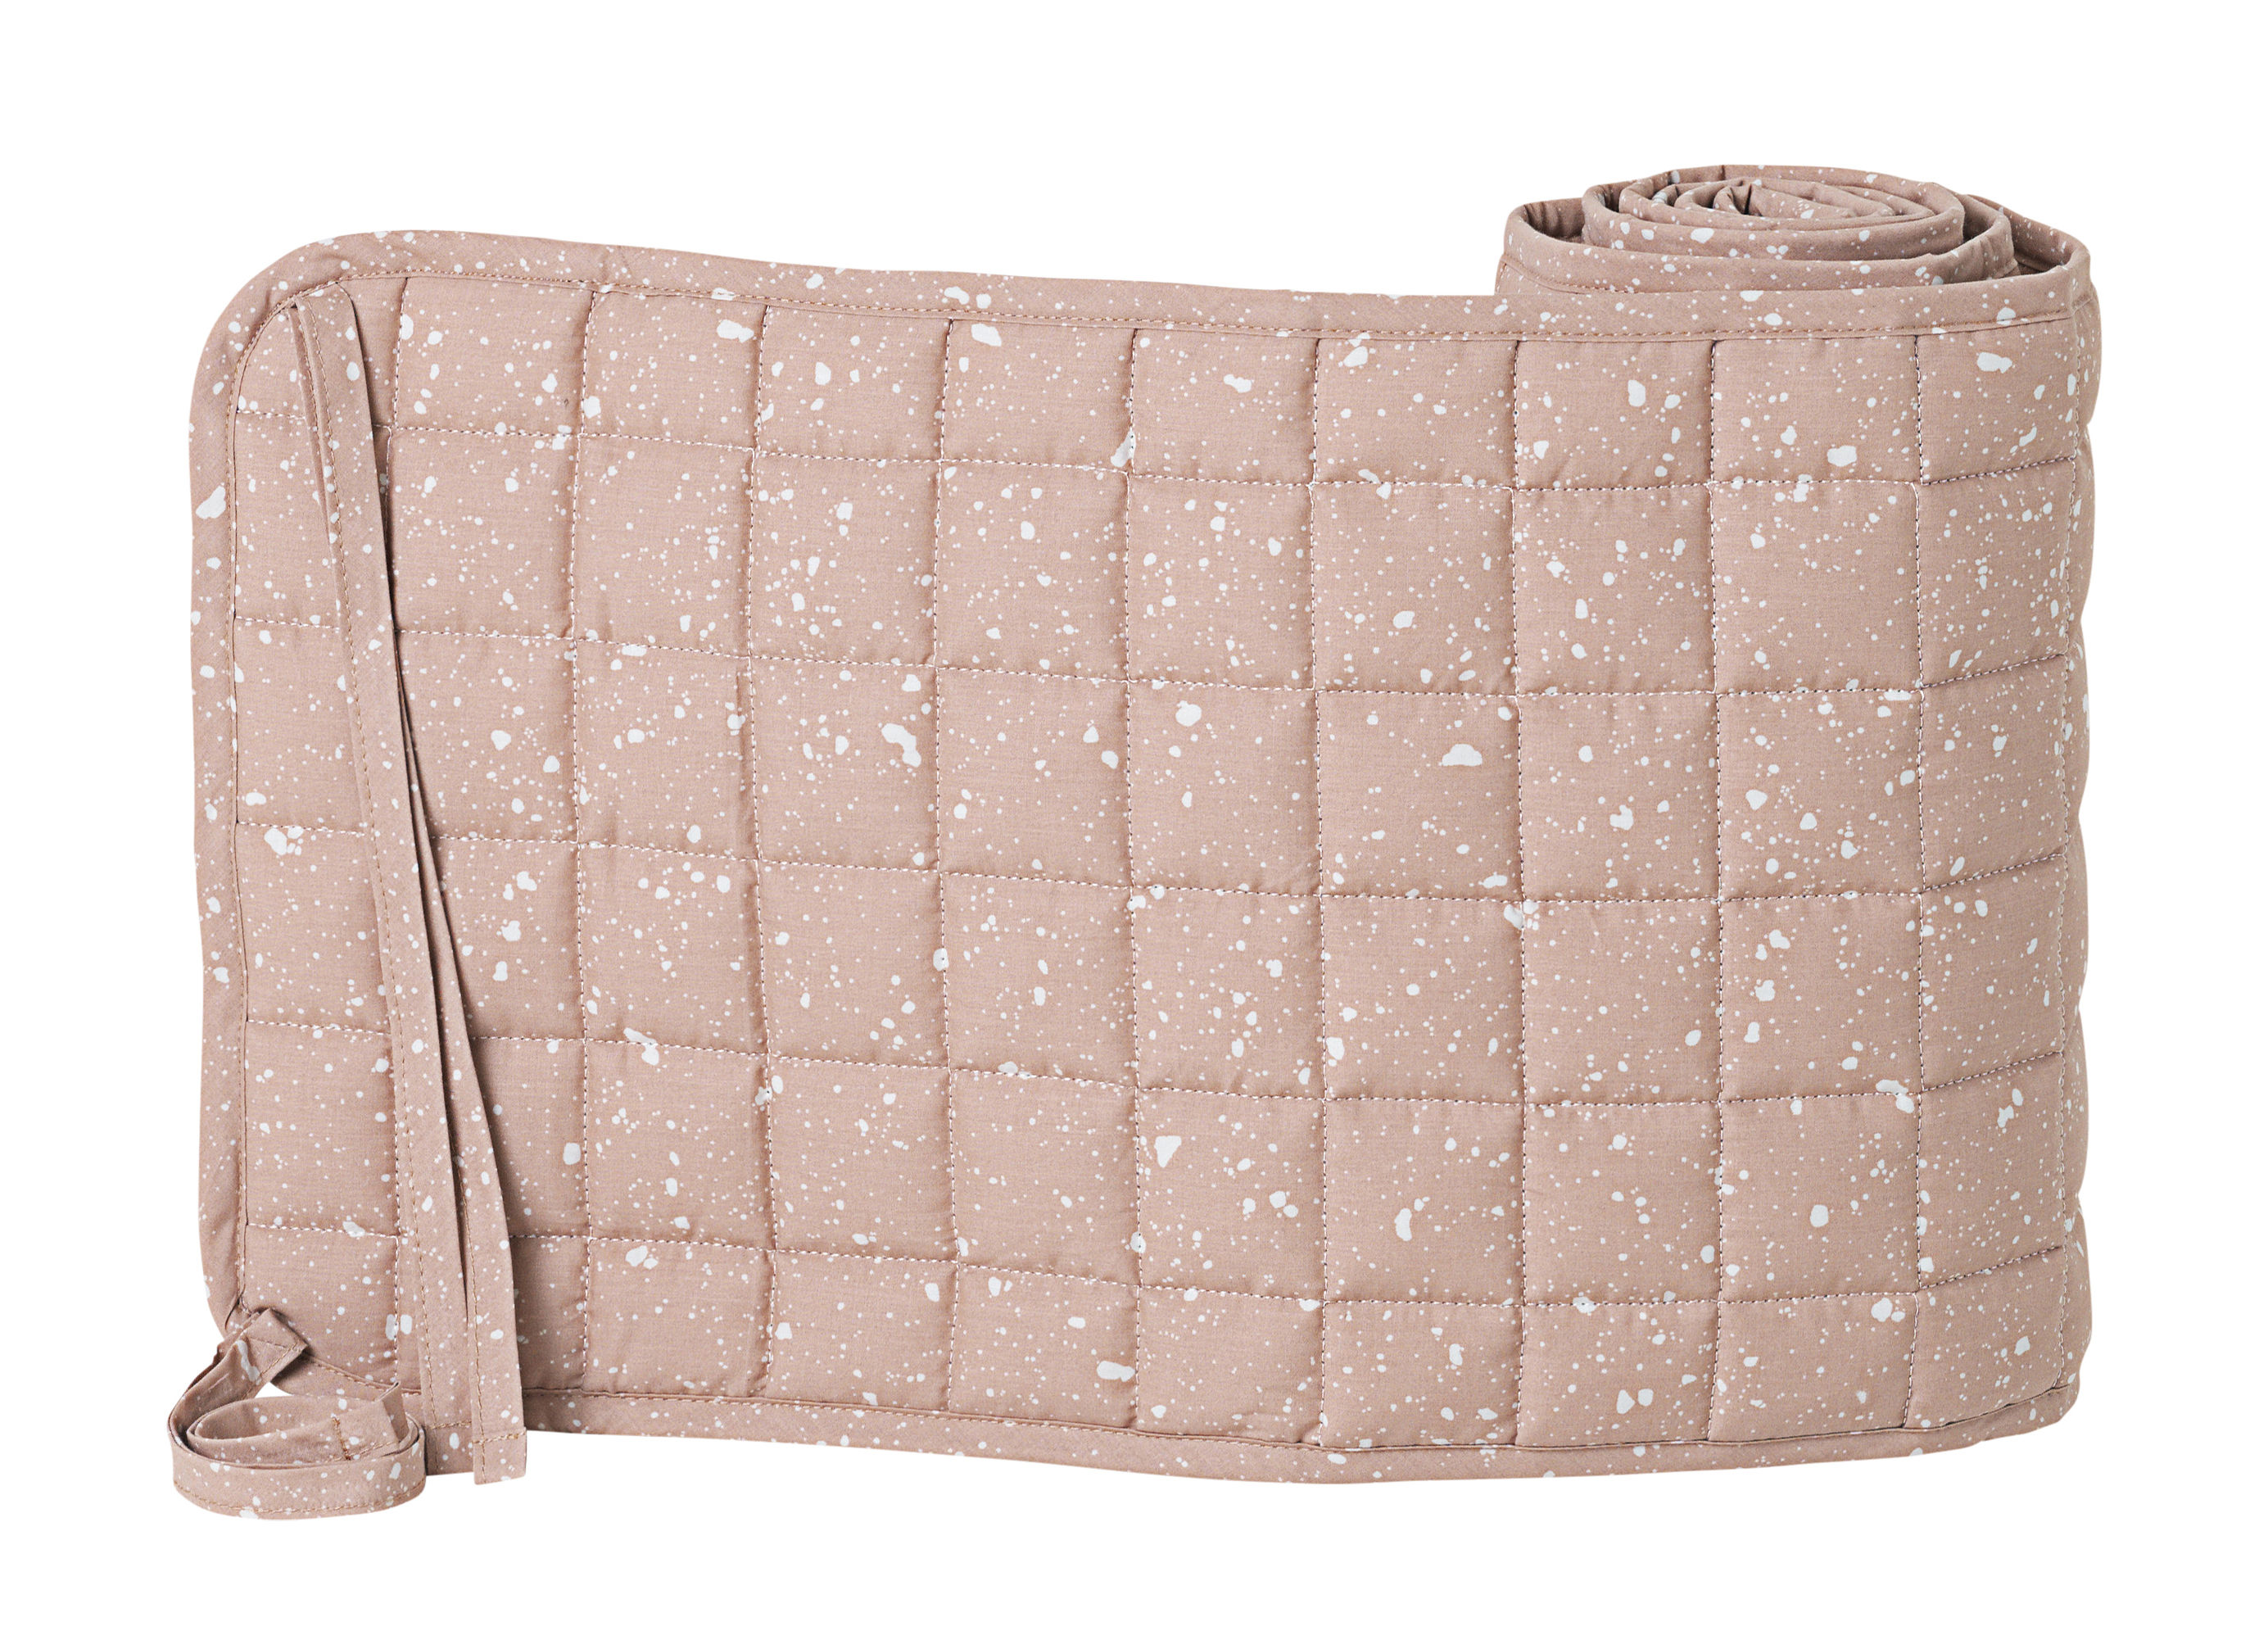 Decoration - Children's Home Accessories - Hush Bed bumper - / L 180 cm by Ferm Living - Pink / White patterns - Organic cotton, Polyester